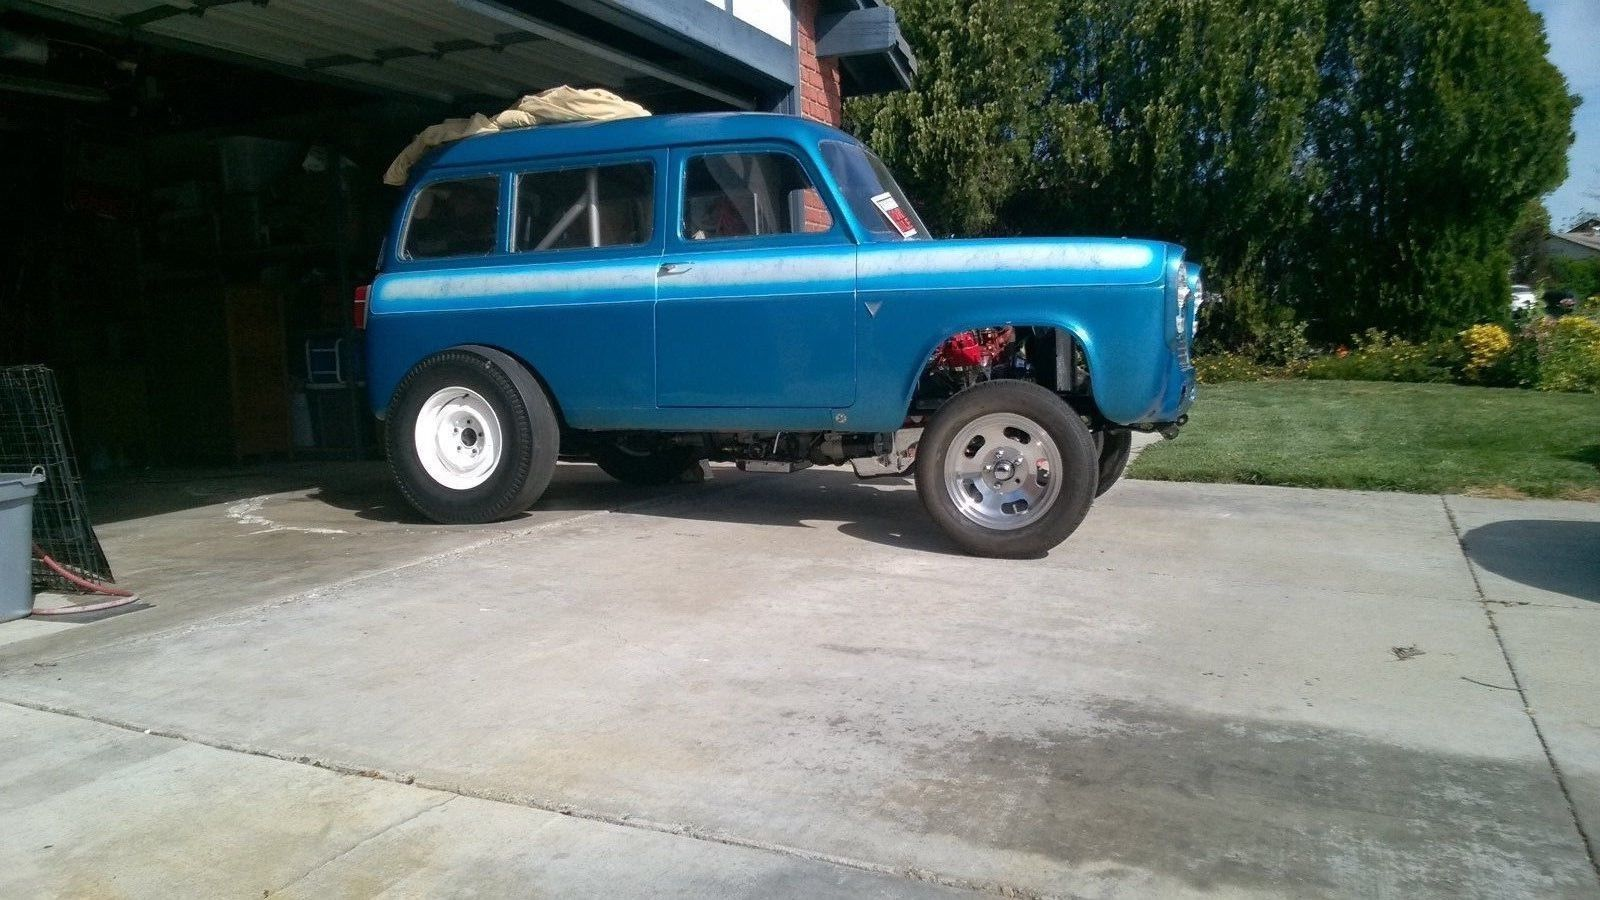 1957 Anglia old drag car | Race cars for sale | Pinterest | Cars